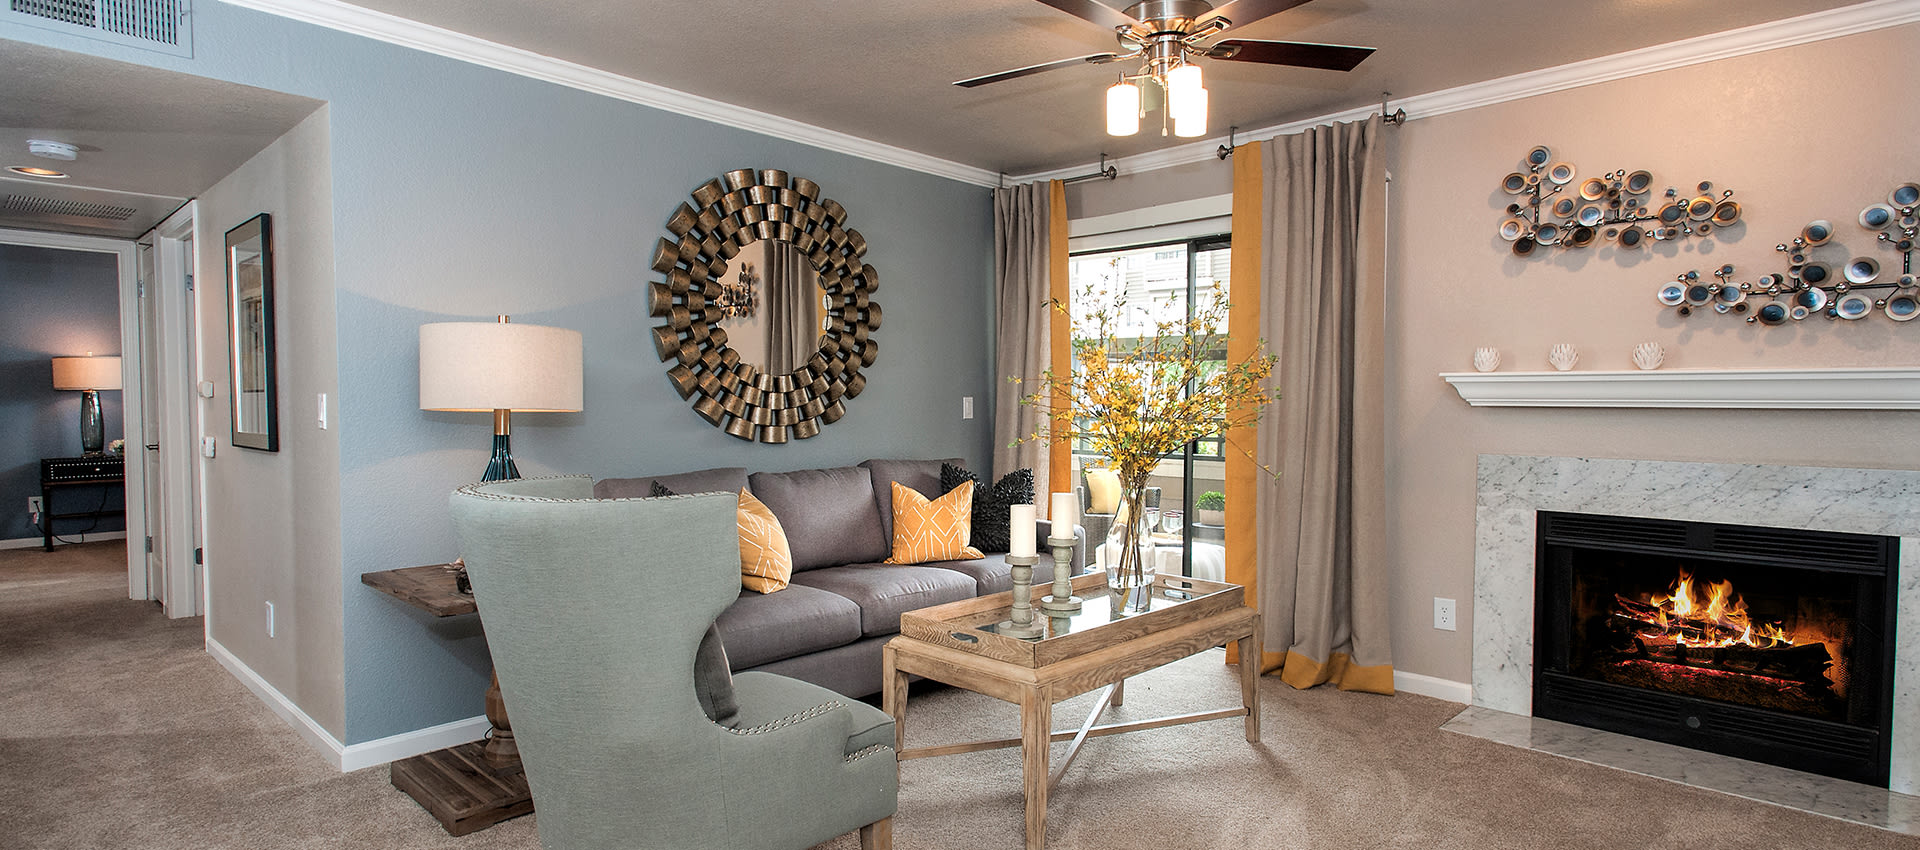 Living Room at Reserve at Capital Center Apartment Homes in Rancho Cordova, CA